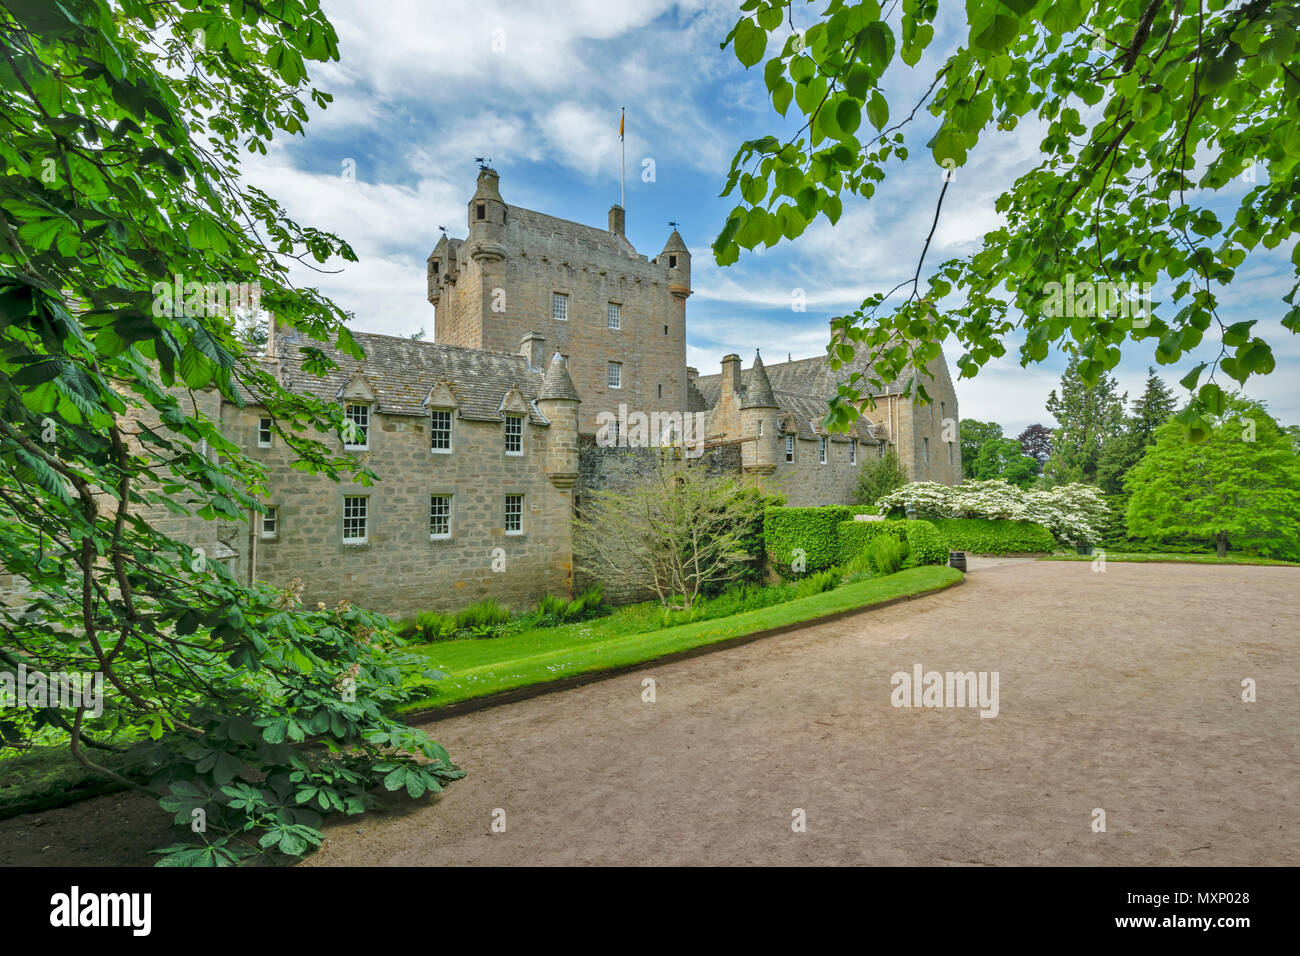 CAWDOR CASTLE NAIRN SCOTLAND THE MAIN BUILDING AND TREES IN SPRING - Stock Image